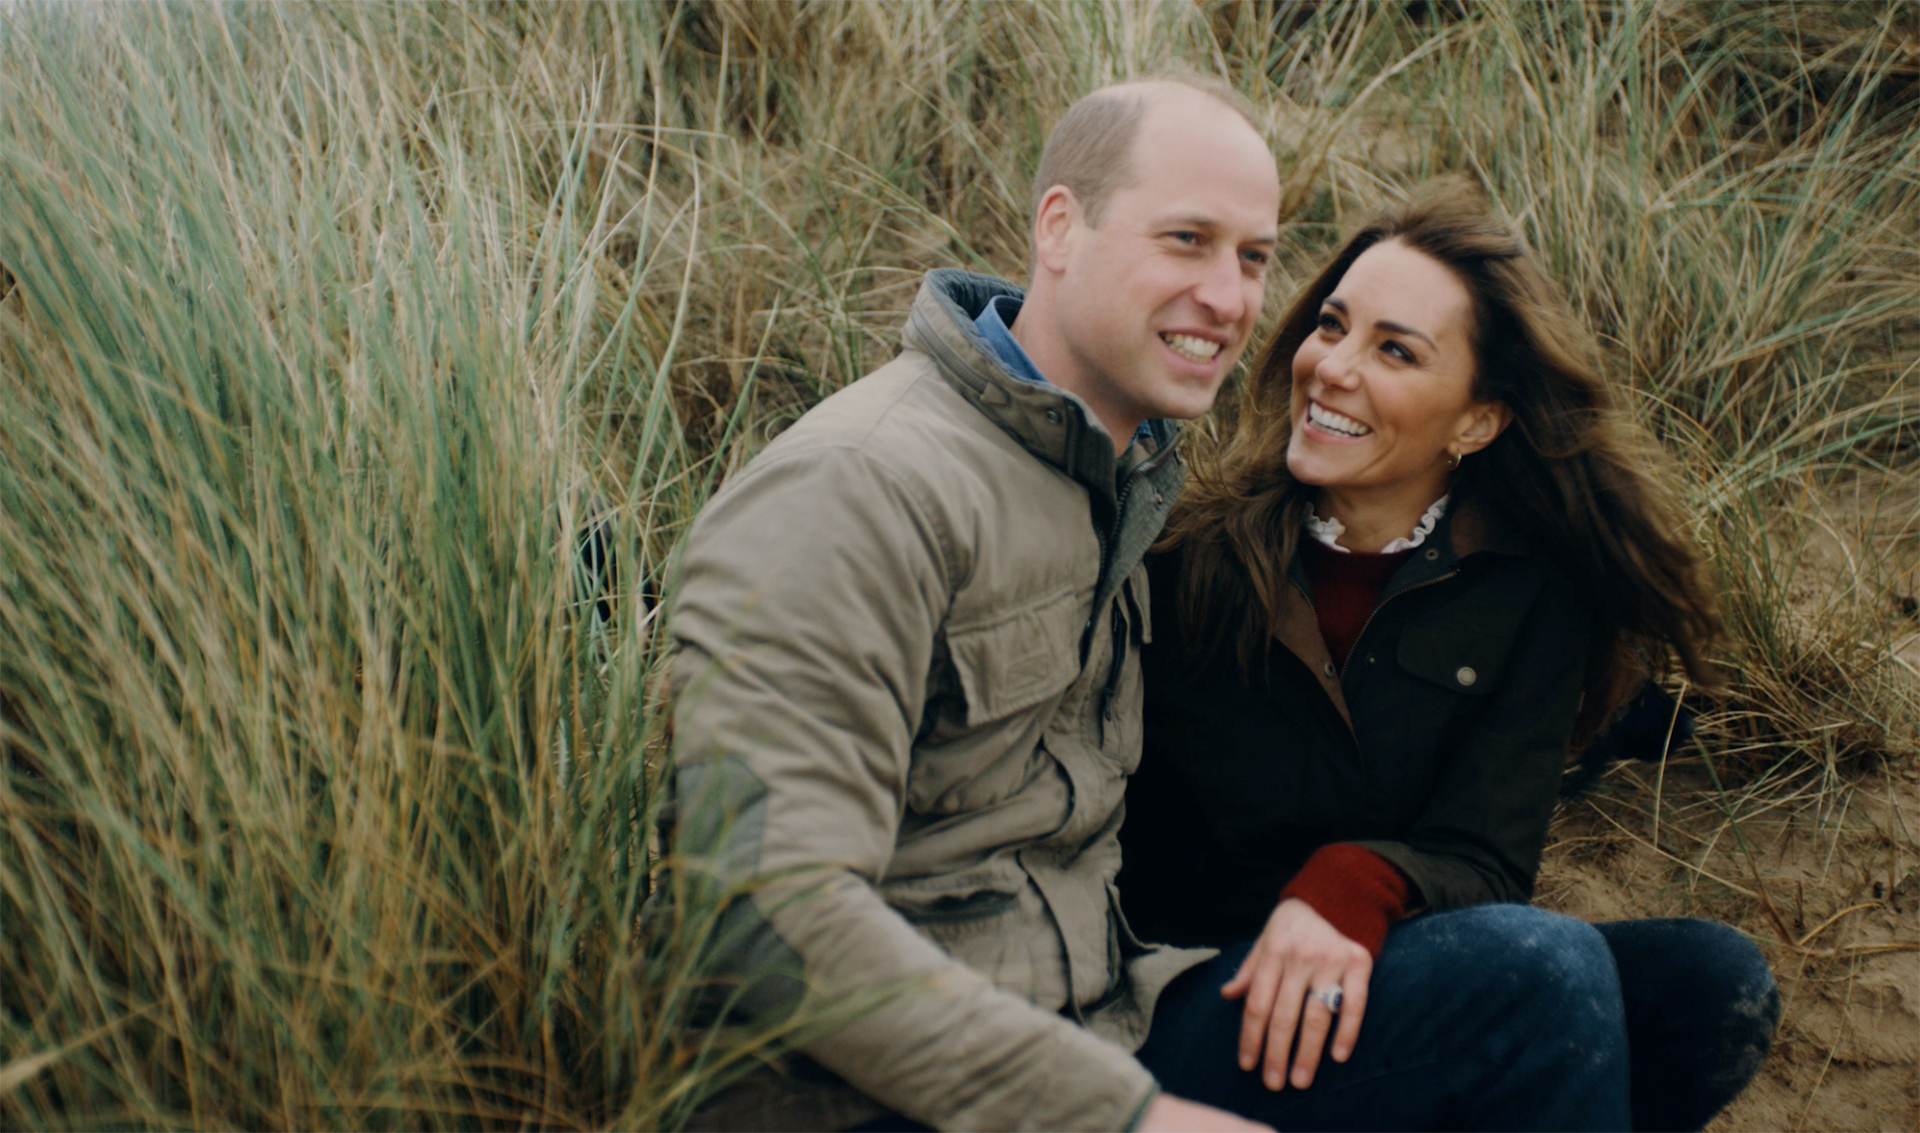 A new video clip has been shared on The Duke and Duchess of Cambridge's @kensingtonroyal social media channels